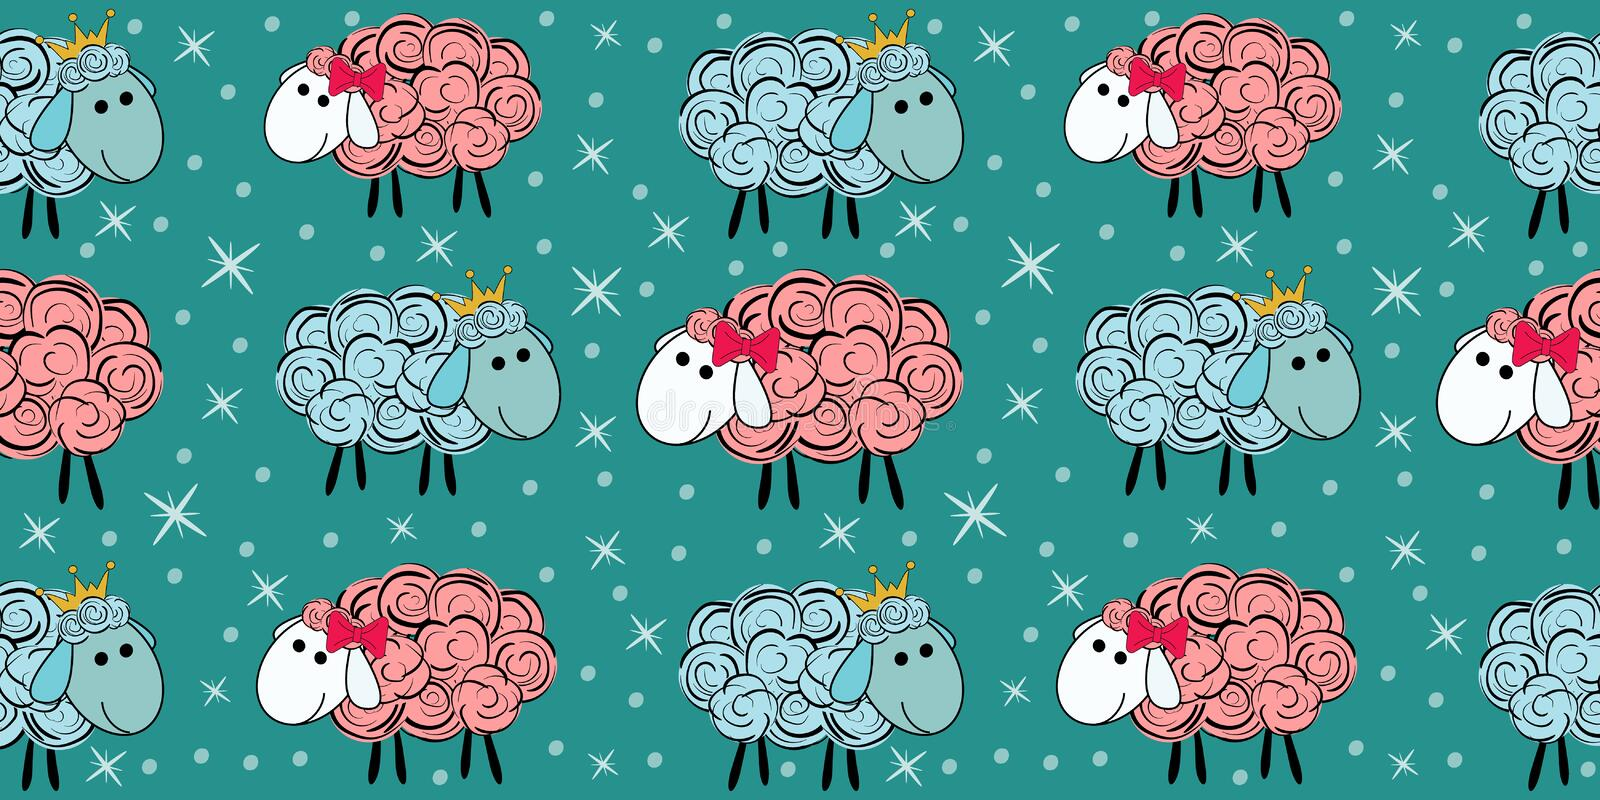 Vector seamless pattern with a sheep. Illustration of a cartoon sheep. Prints for textiles. vector illustration